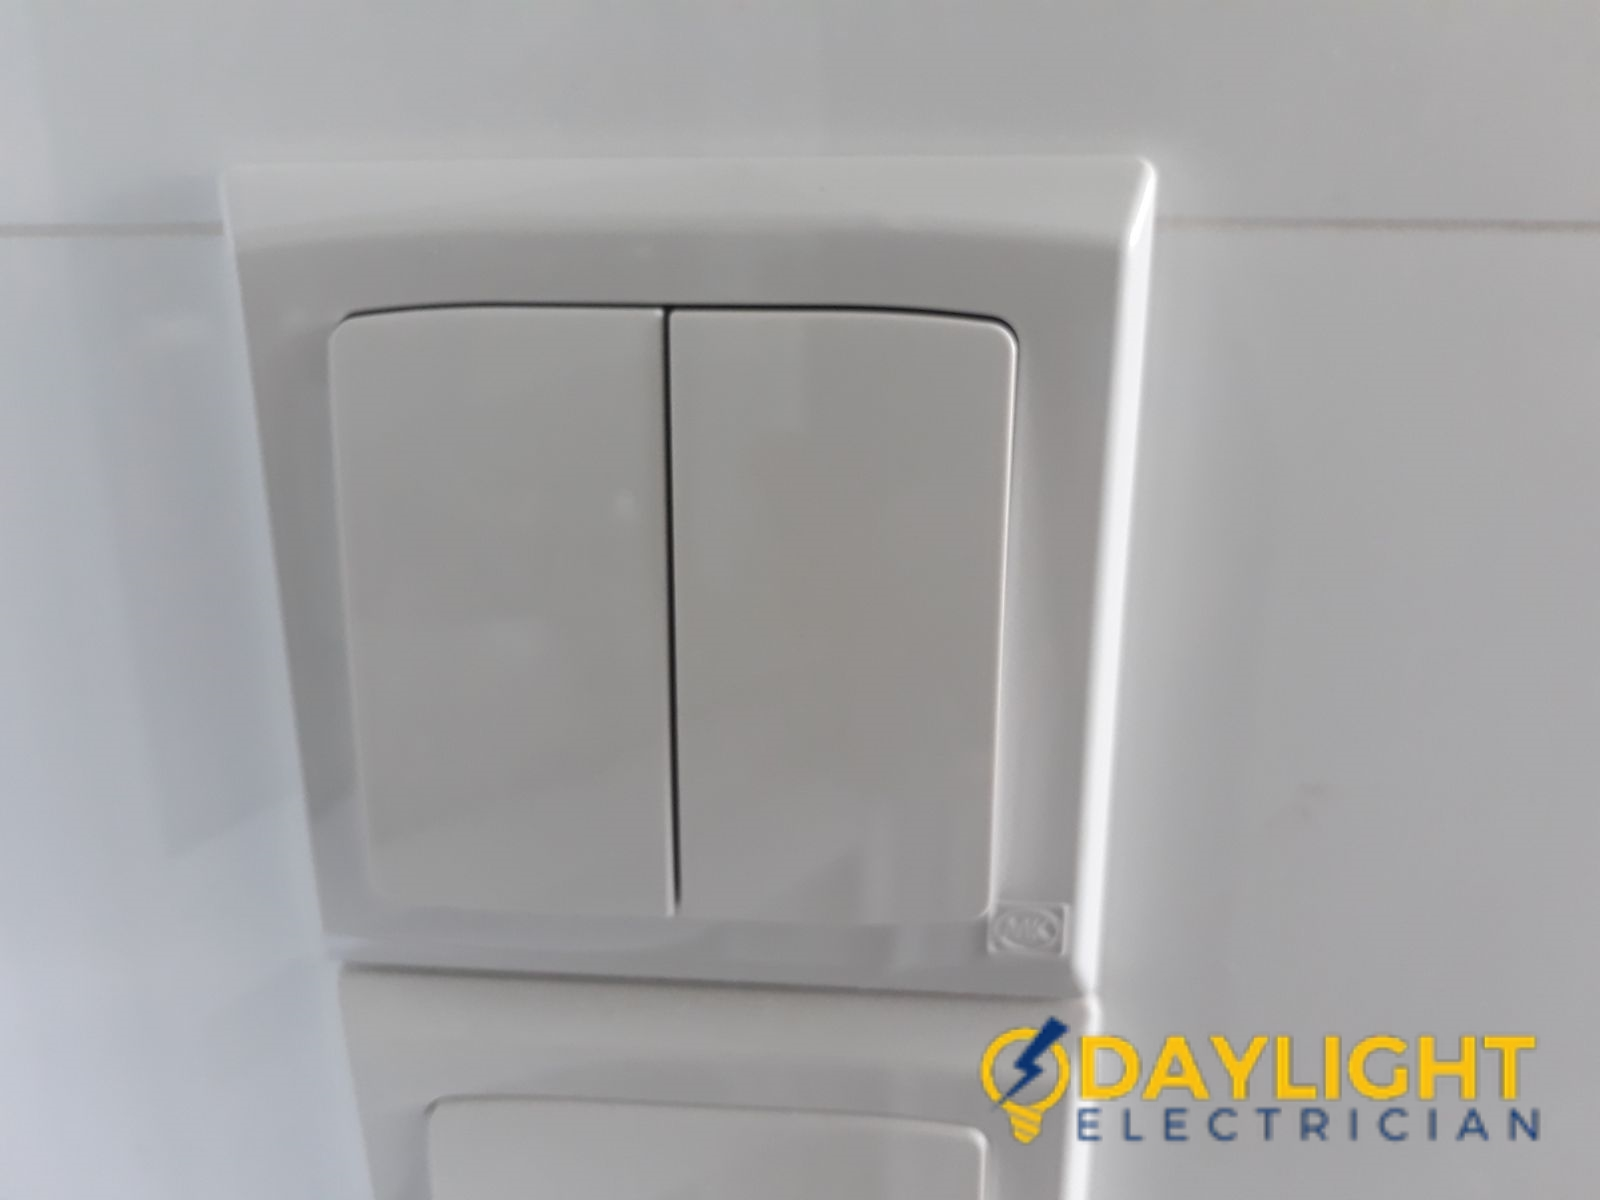 Readjusting-Light-Switch-Incorrect-Configuration-Electrician-Singapore-HDB-Tampines-2_wm